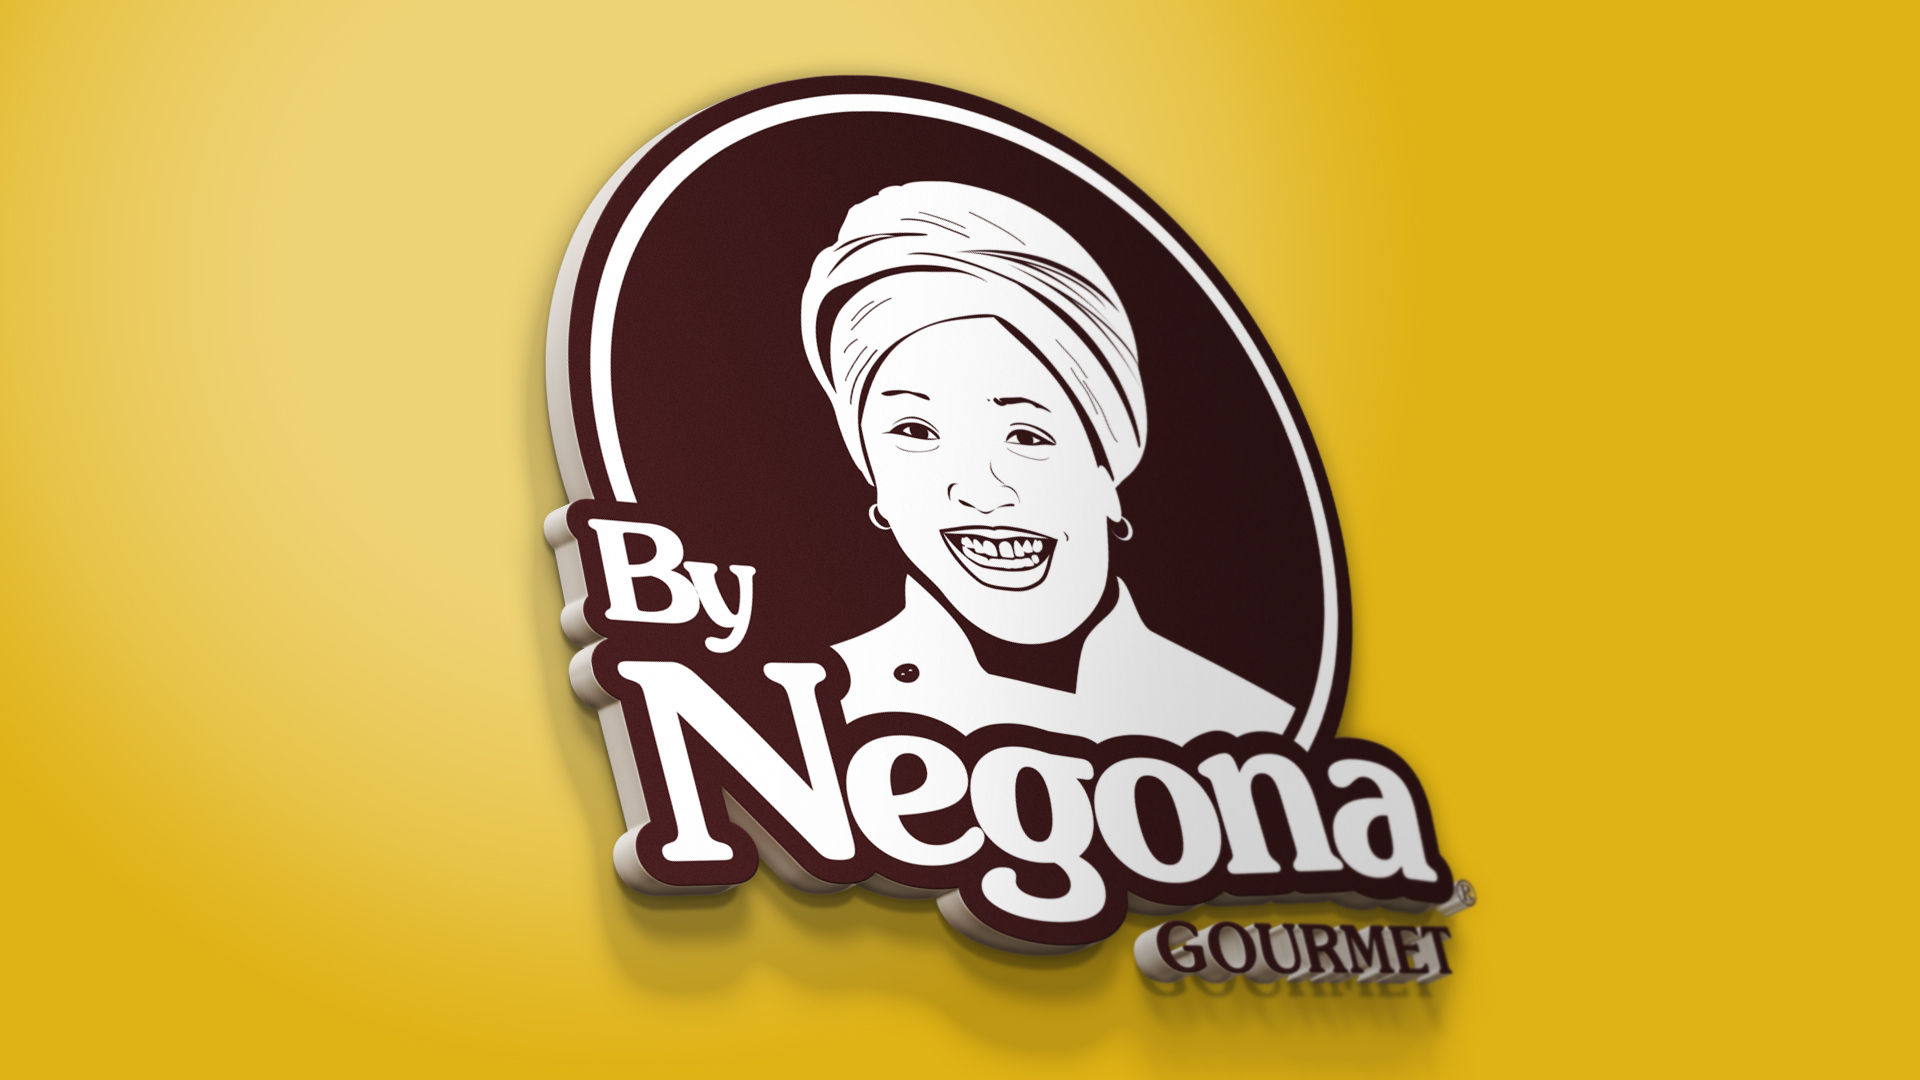 By Negona Gourmet